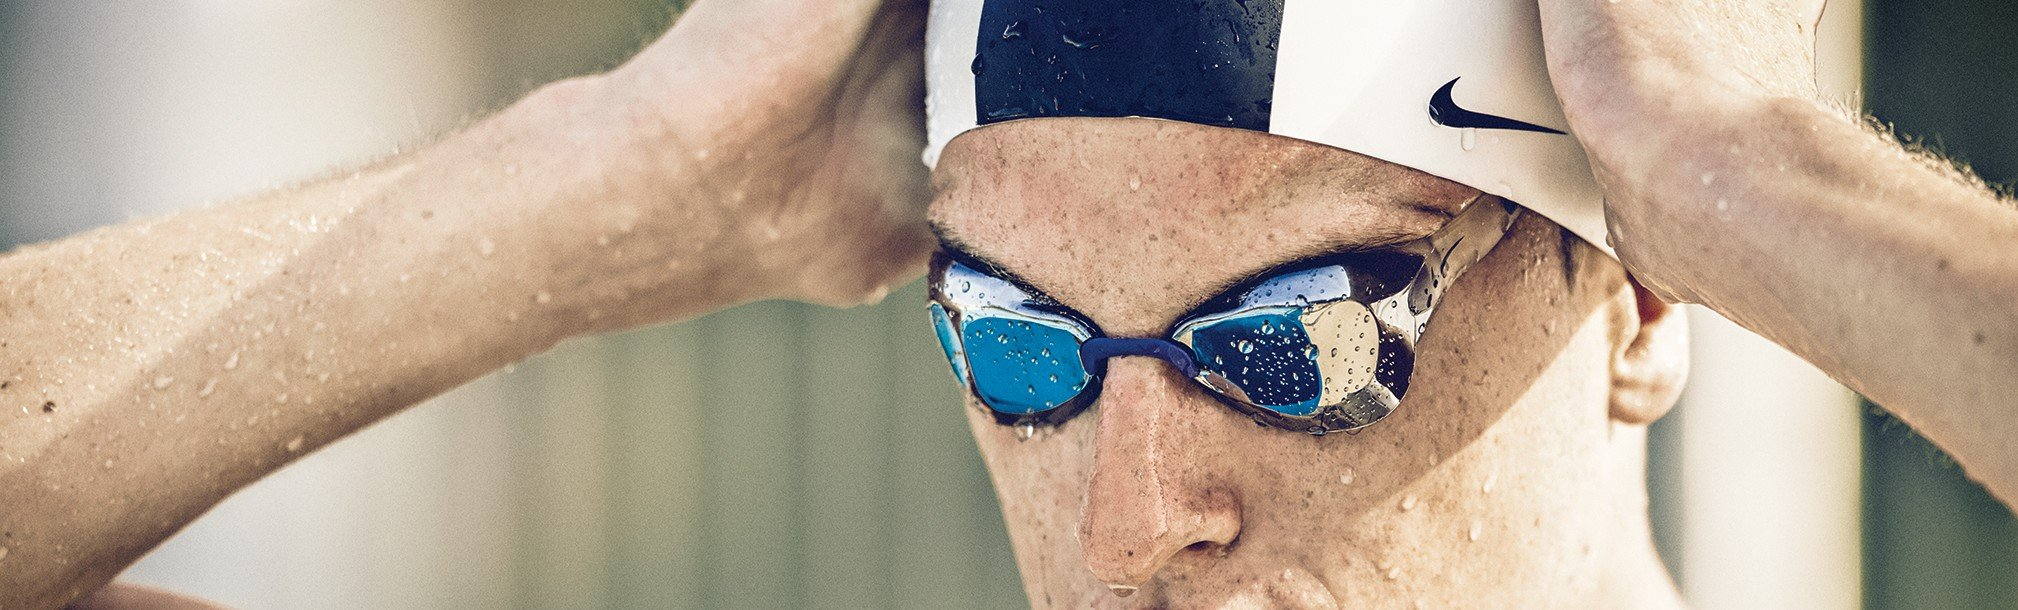 Mirrored goggles and Nike Swim cap